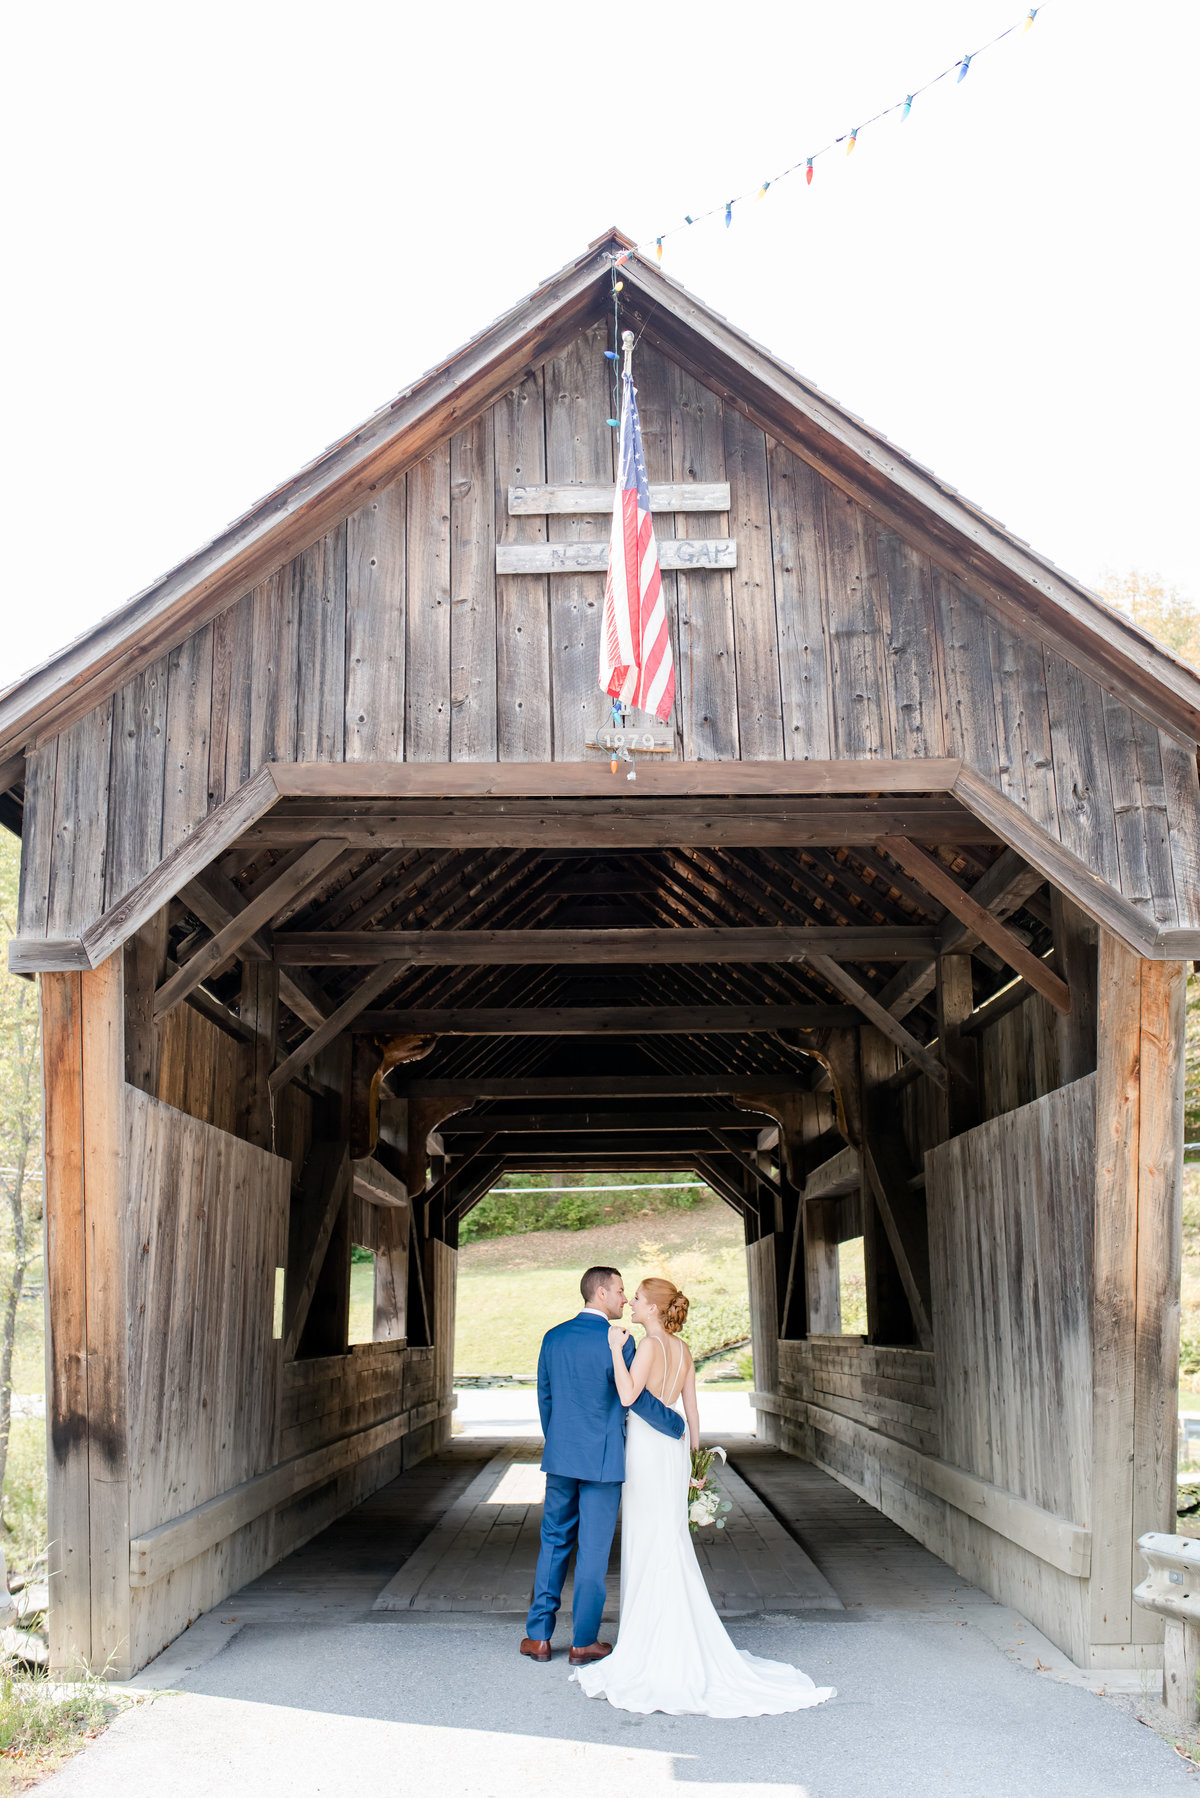 Sugarbush Vermont Wedding-Vermont Wedding Photographer-  Ashley and Joe Wedding 202504-17